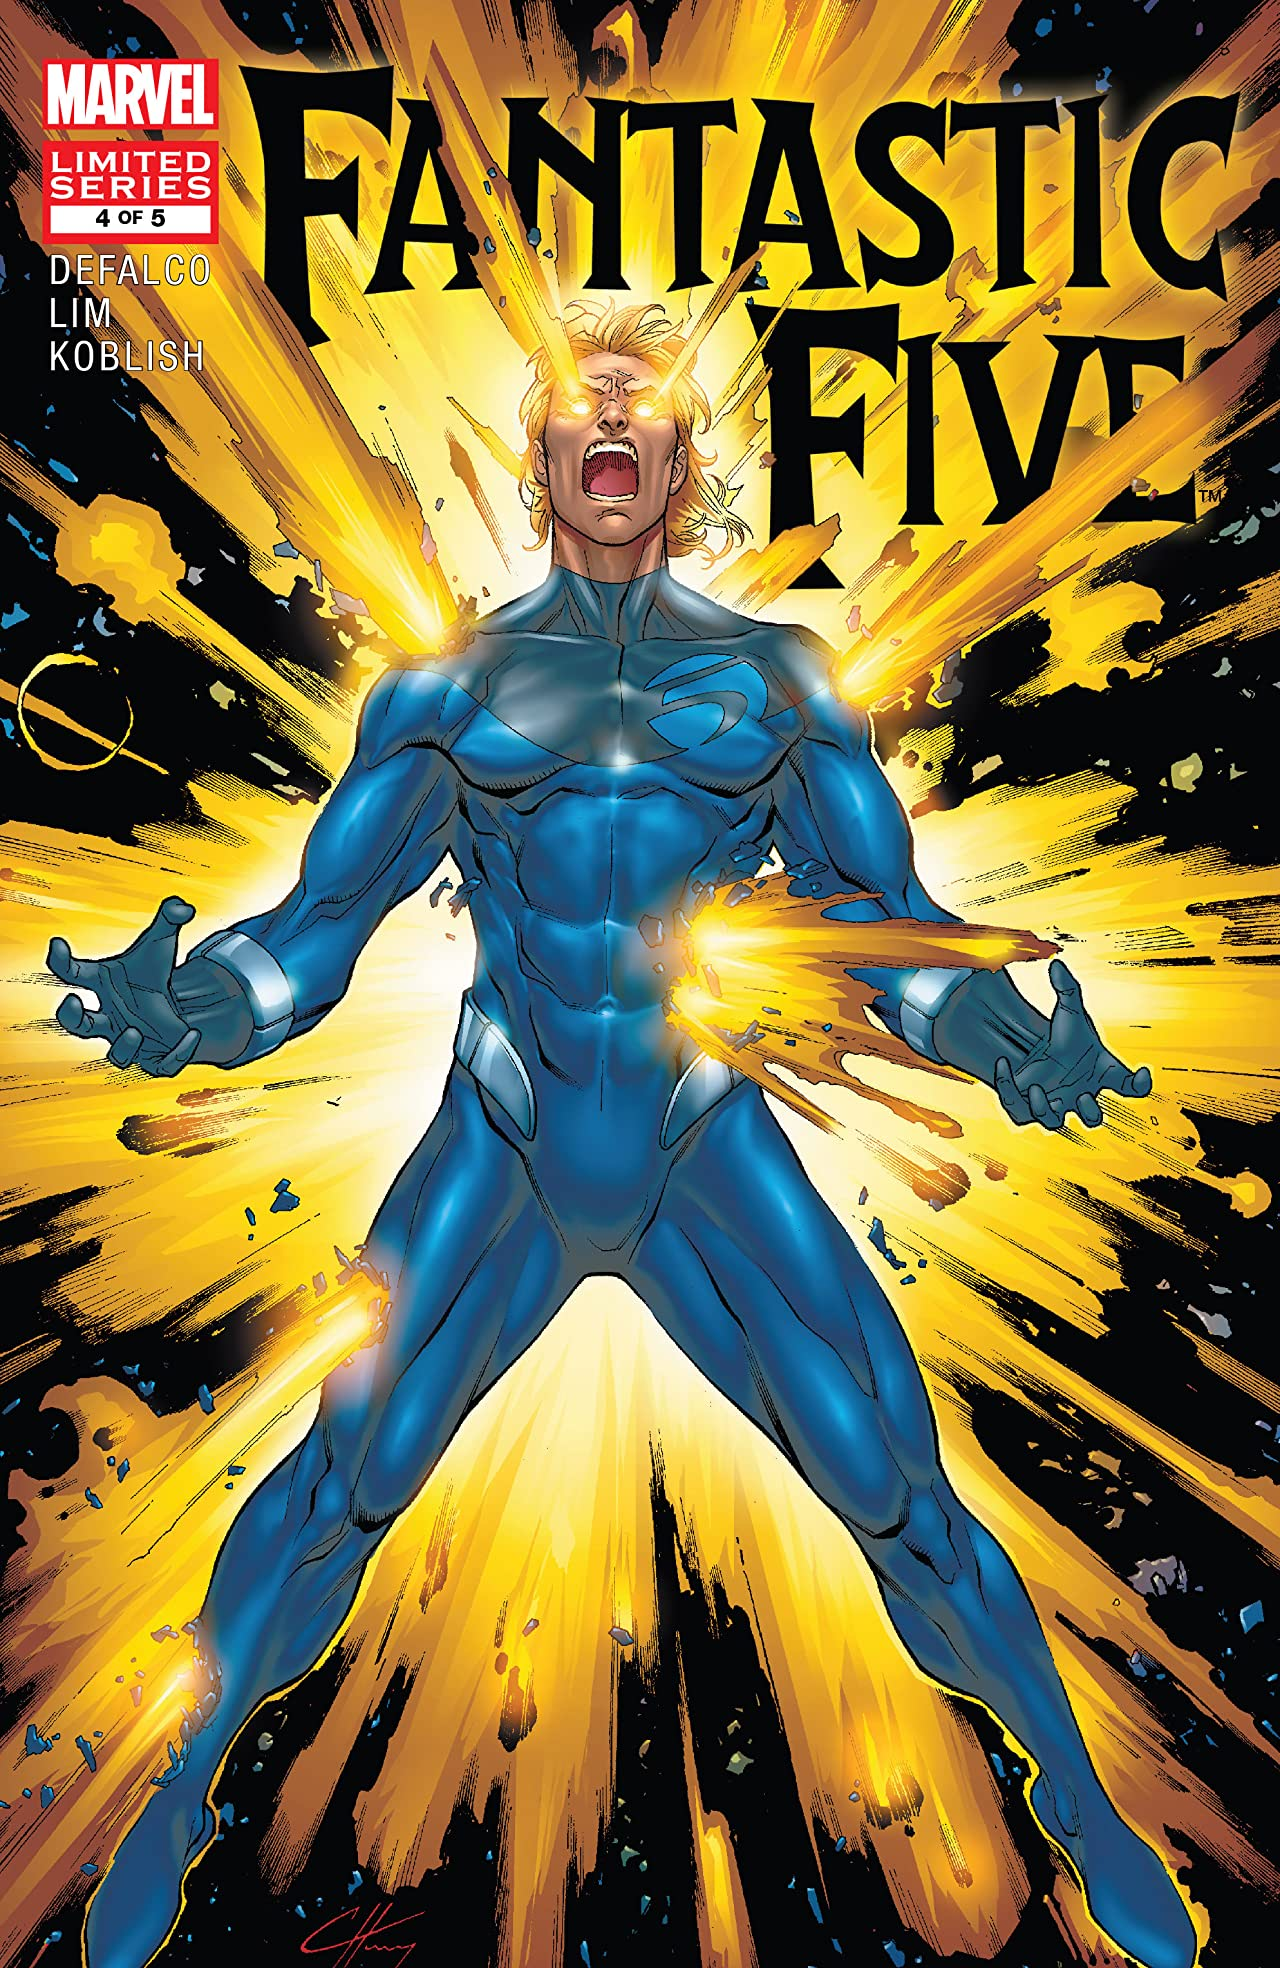 Fantastic Five (2007) #4 (of 5)